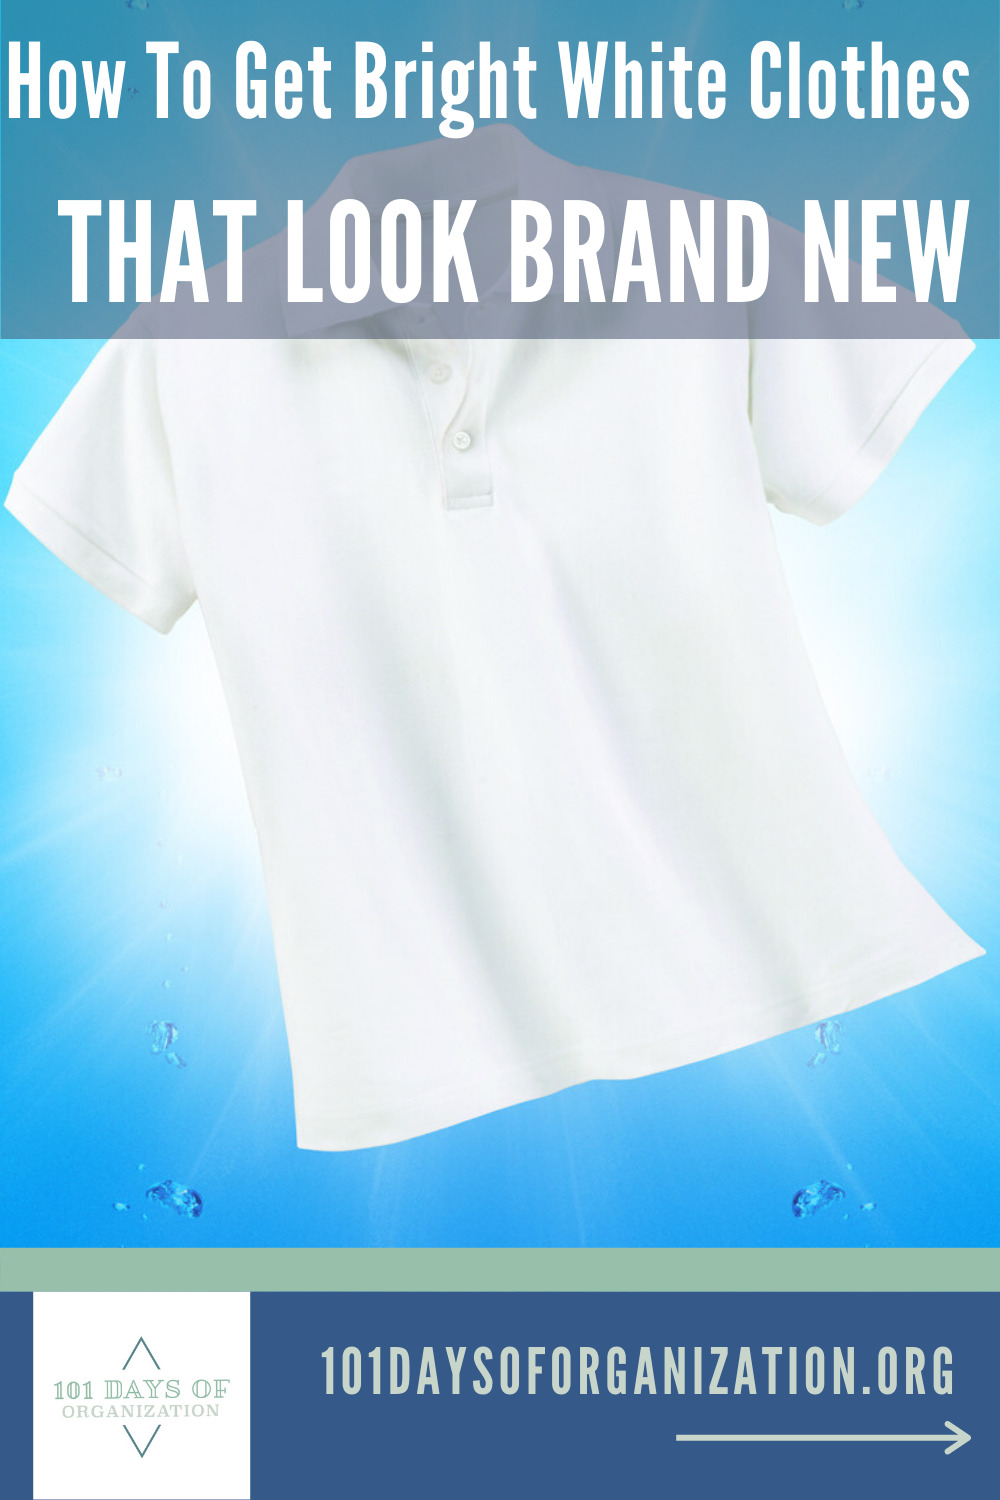 How to get bright white clothes? It's not as hard as you may think, and you don't even have to use bleach! Check out all the ways you can get brighter whites, naturally! #101daysoforganizationblog #howtogetbrightwhiteclothes #brighterwhites